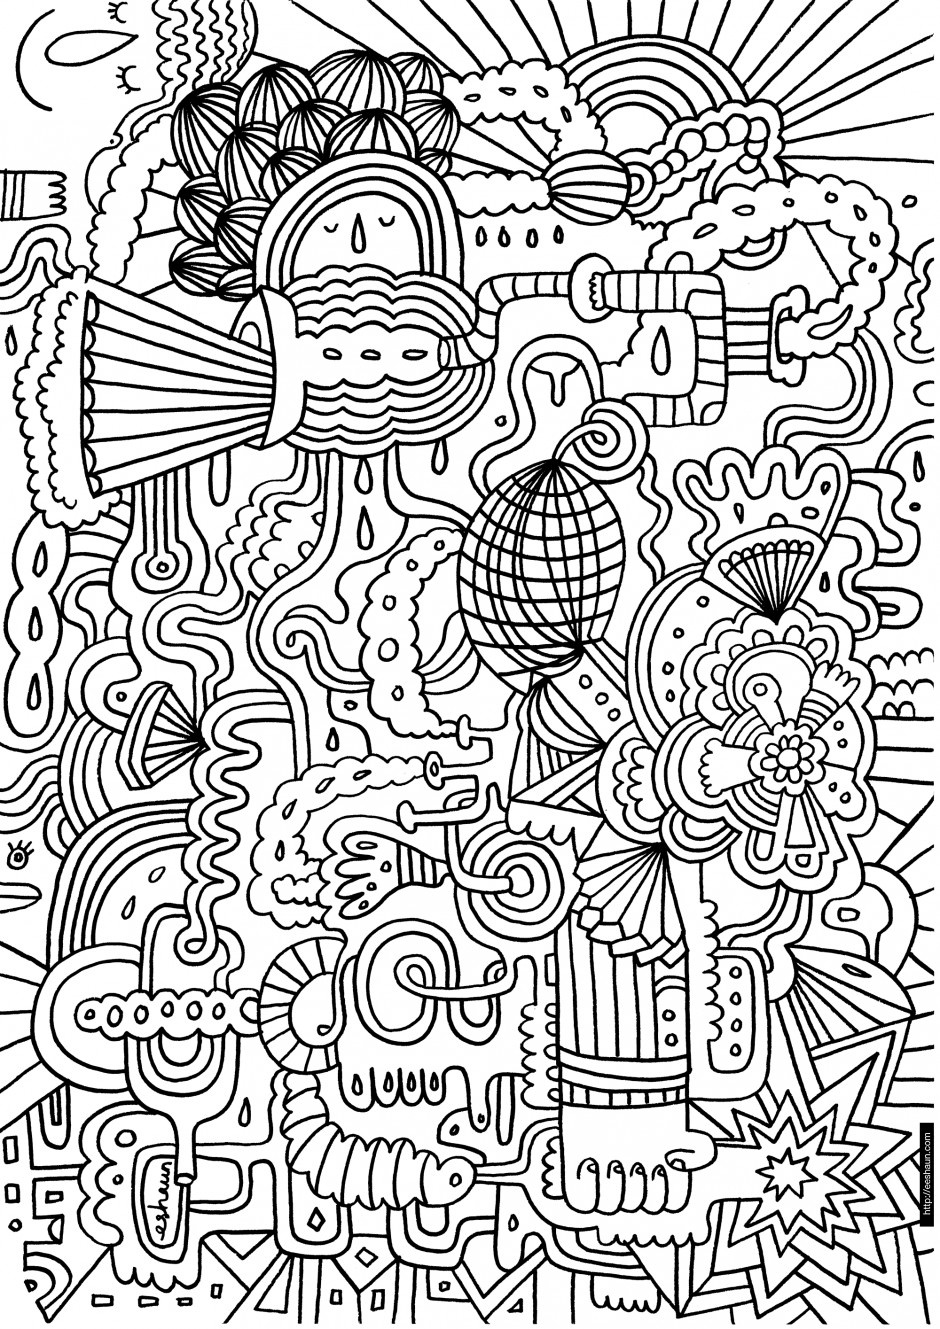 Coloring Pages For Teens No Boys  Coloring Pages for Teen Girls Dr Odd